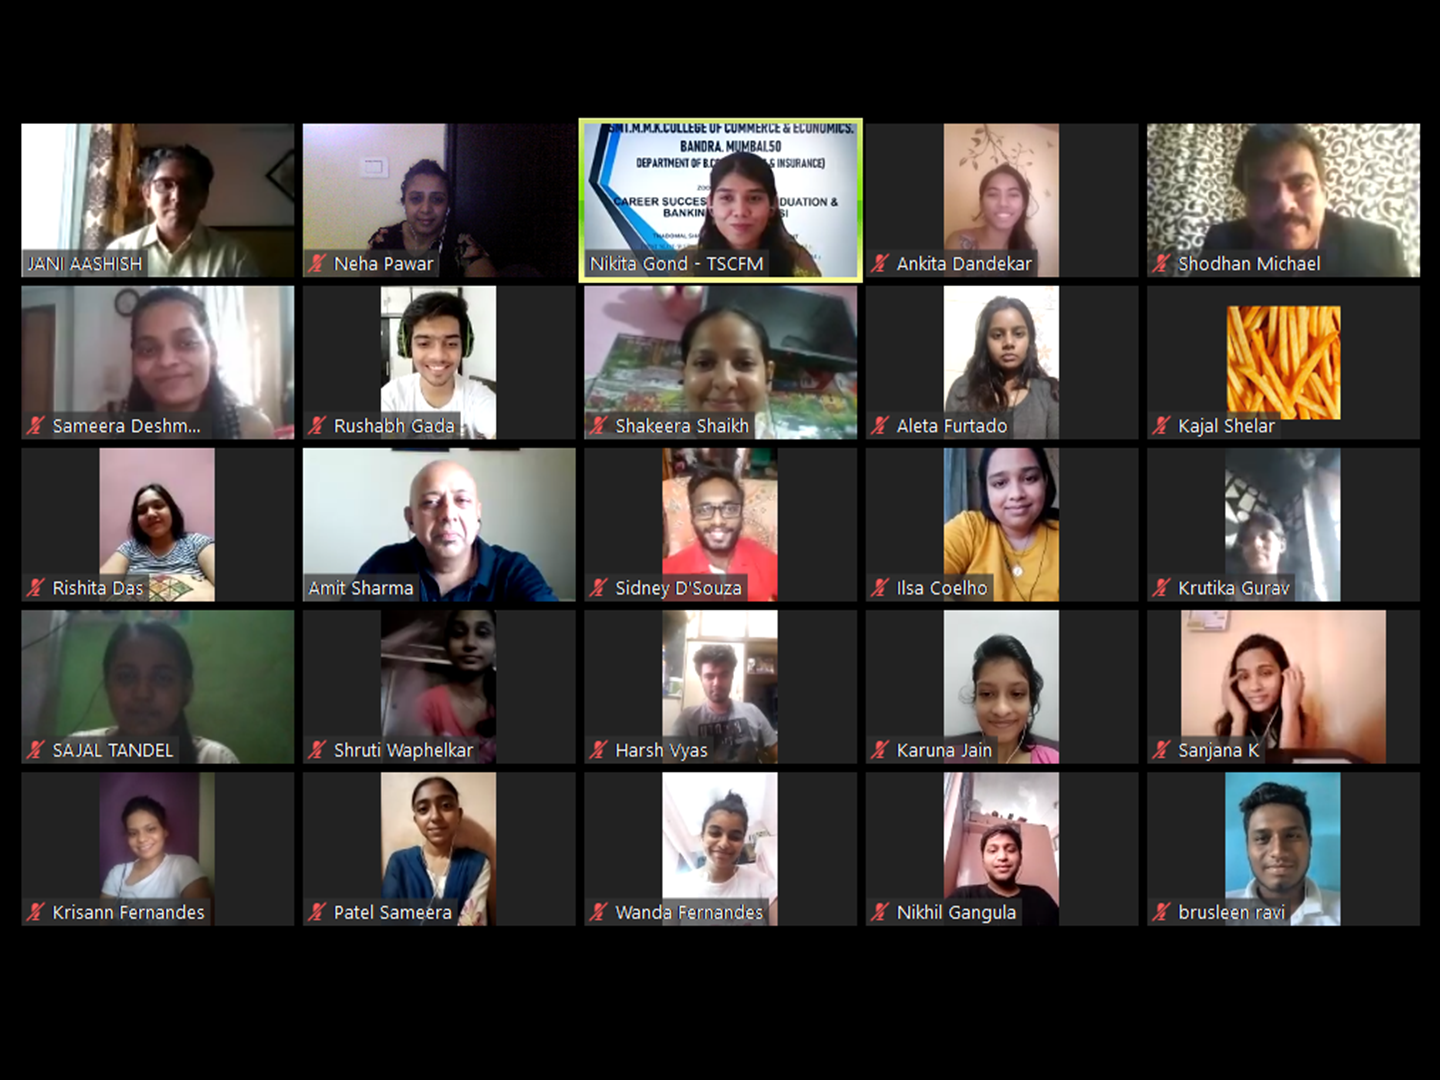 TSCFM organised an Online Seminar for the students of MMK college, Bandra